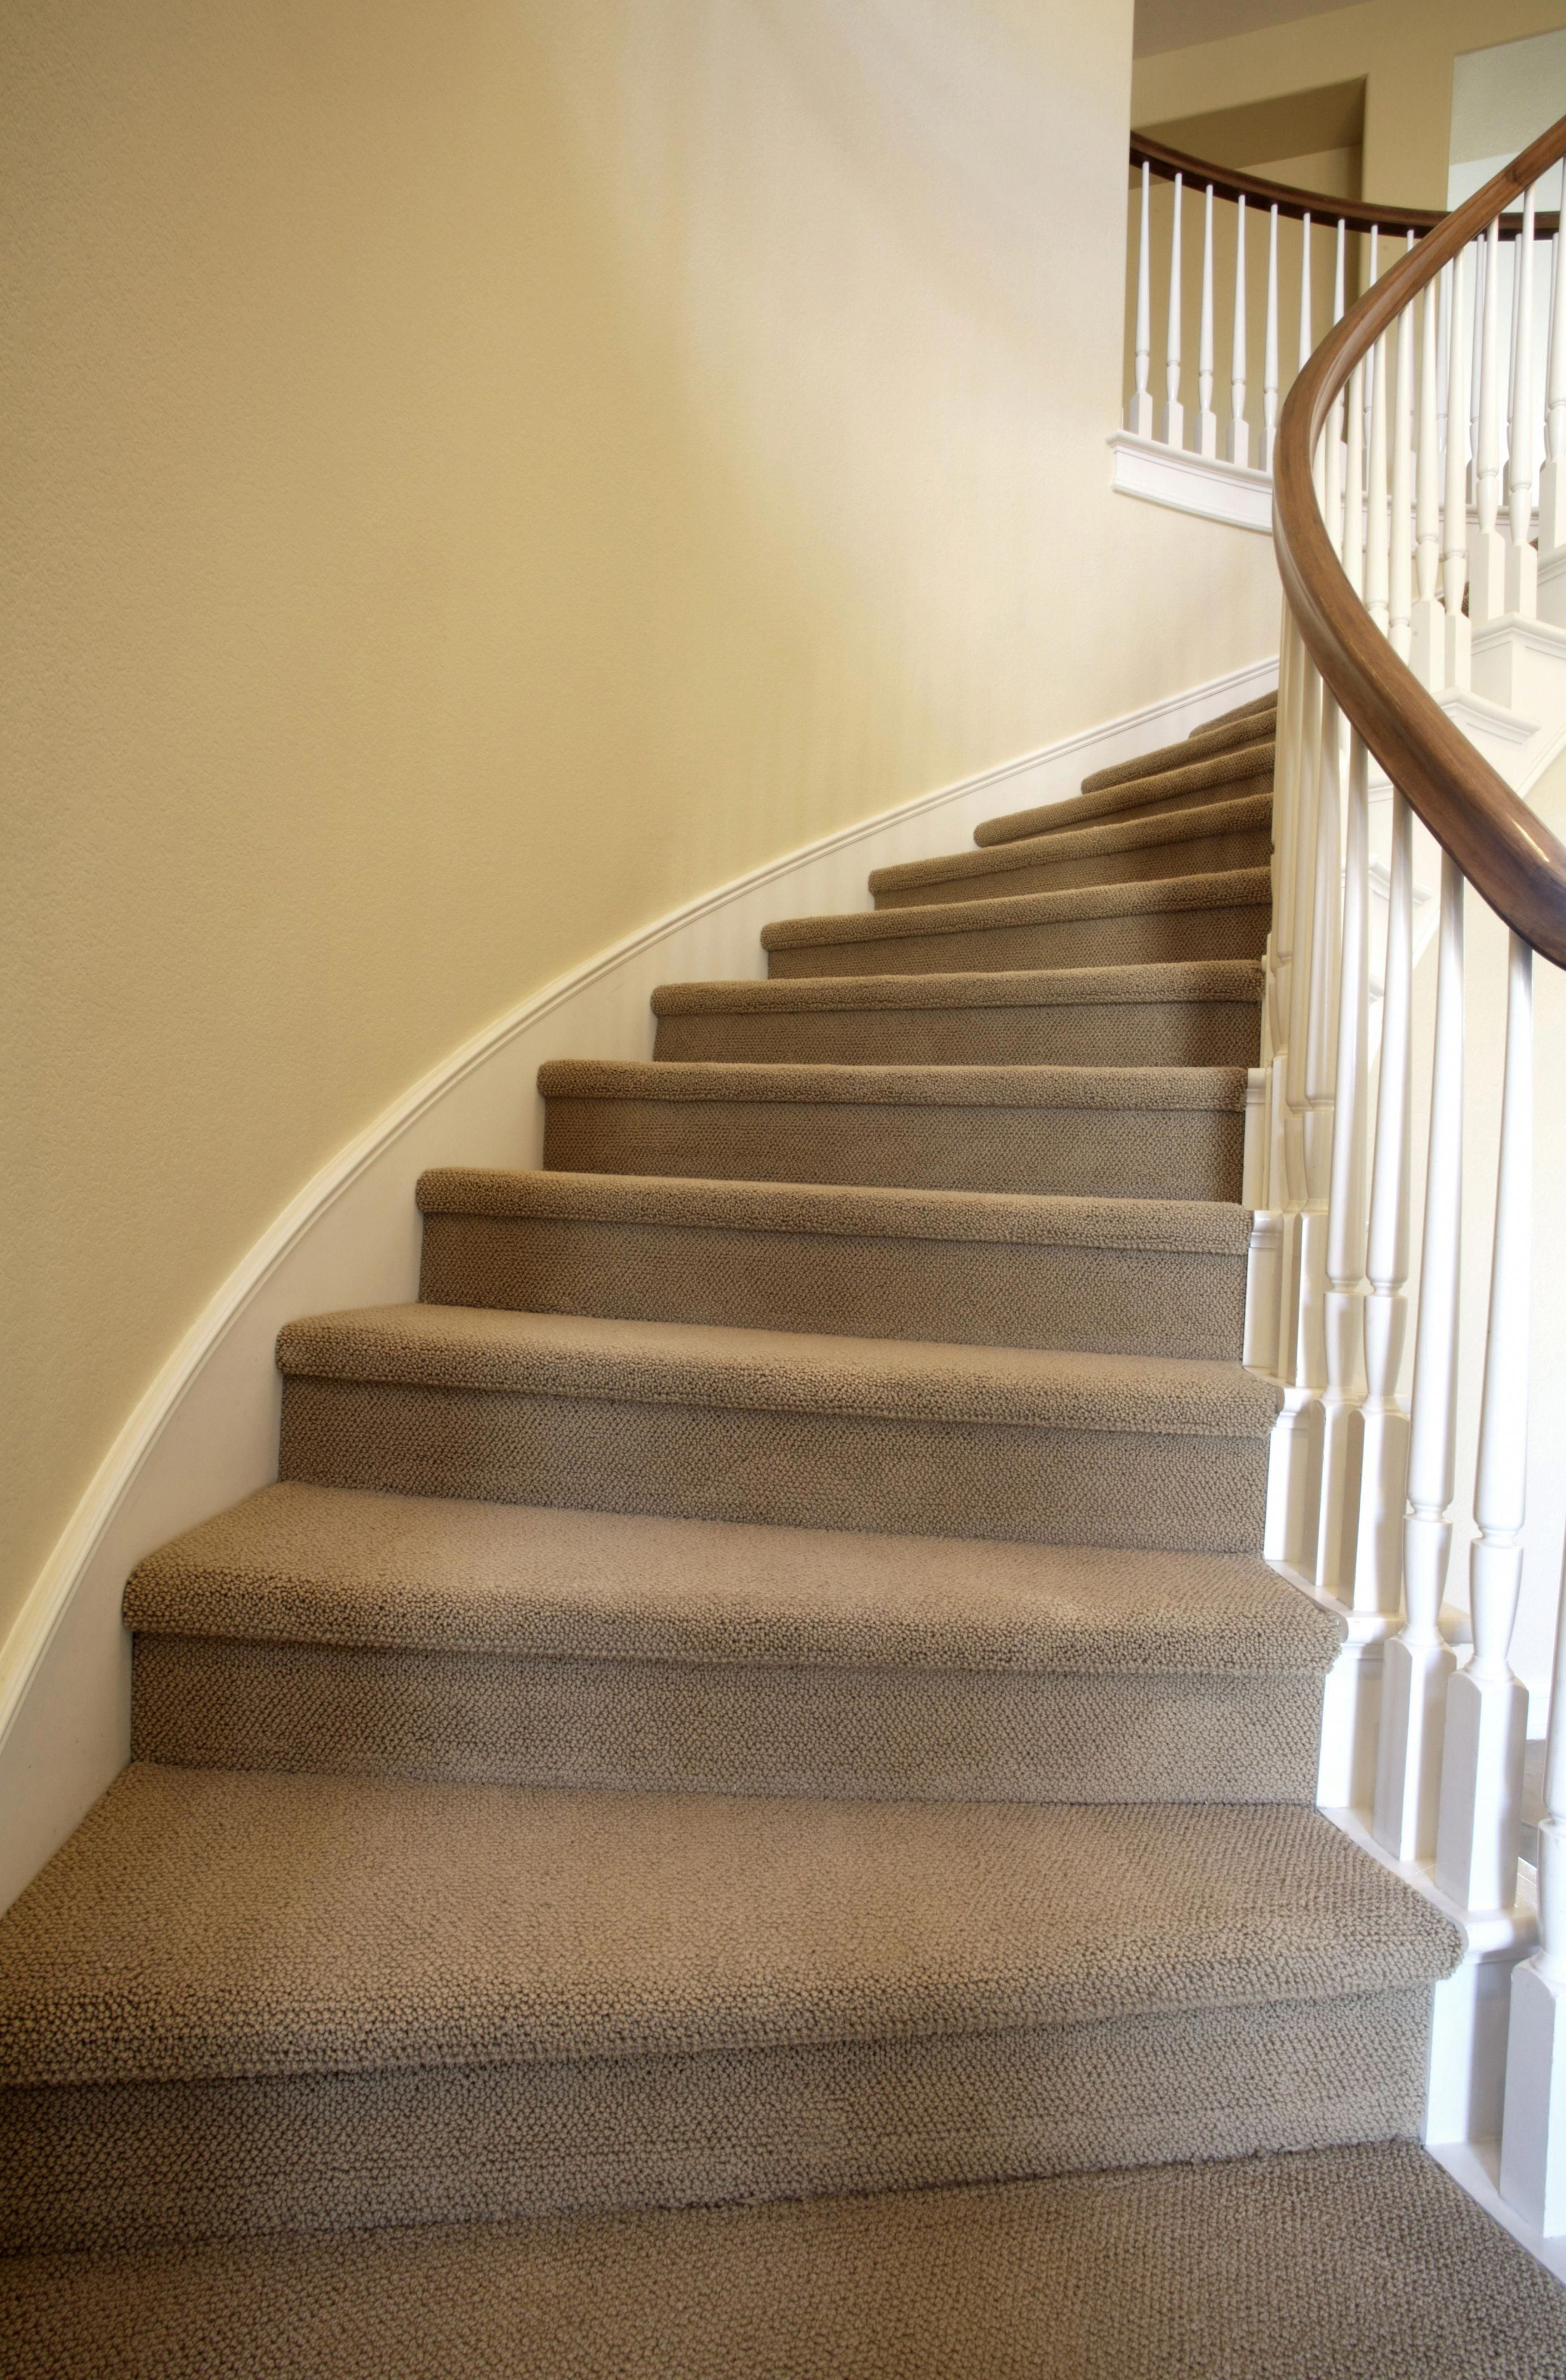 Carpet Runners Over Carpeted Stairs Redcarpetrunnersforrent Info   Stair Carpet Installation Cost   Flooring   Stair Case   Square Yard   Average Cost   Sq Ft